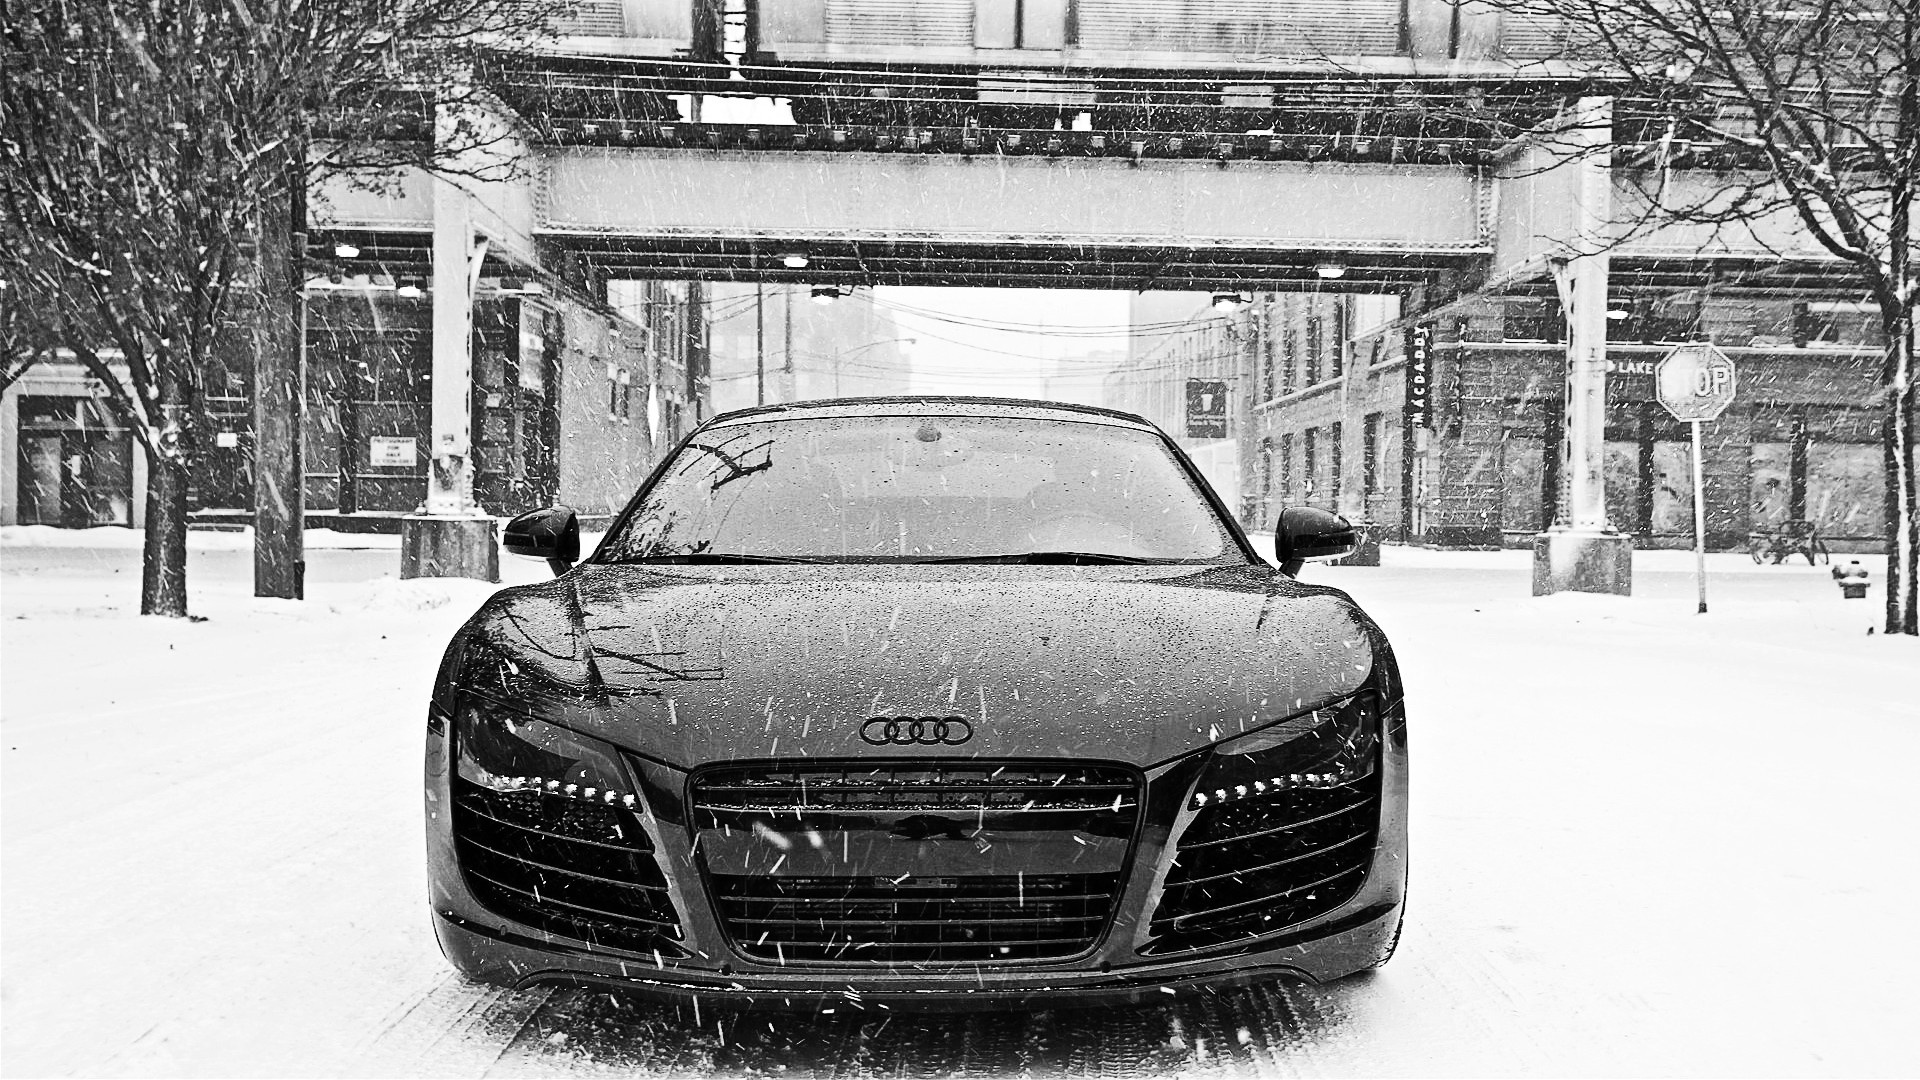 2103 Audi Rr8 In Snow Wallpapers For Desktop